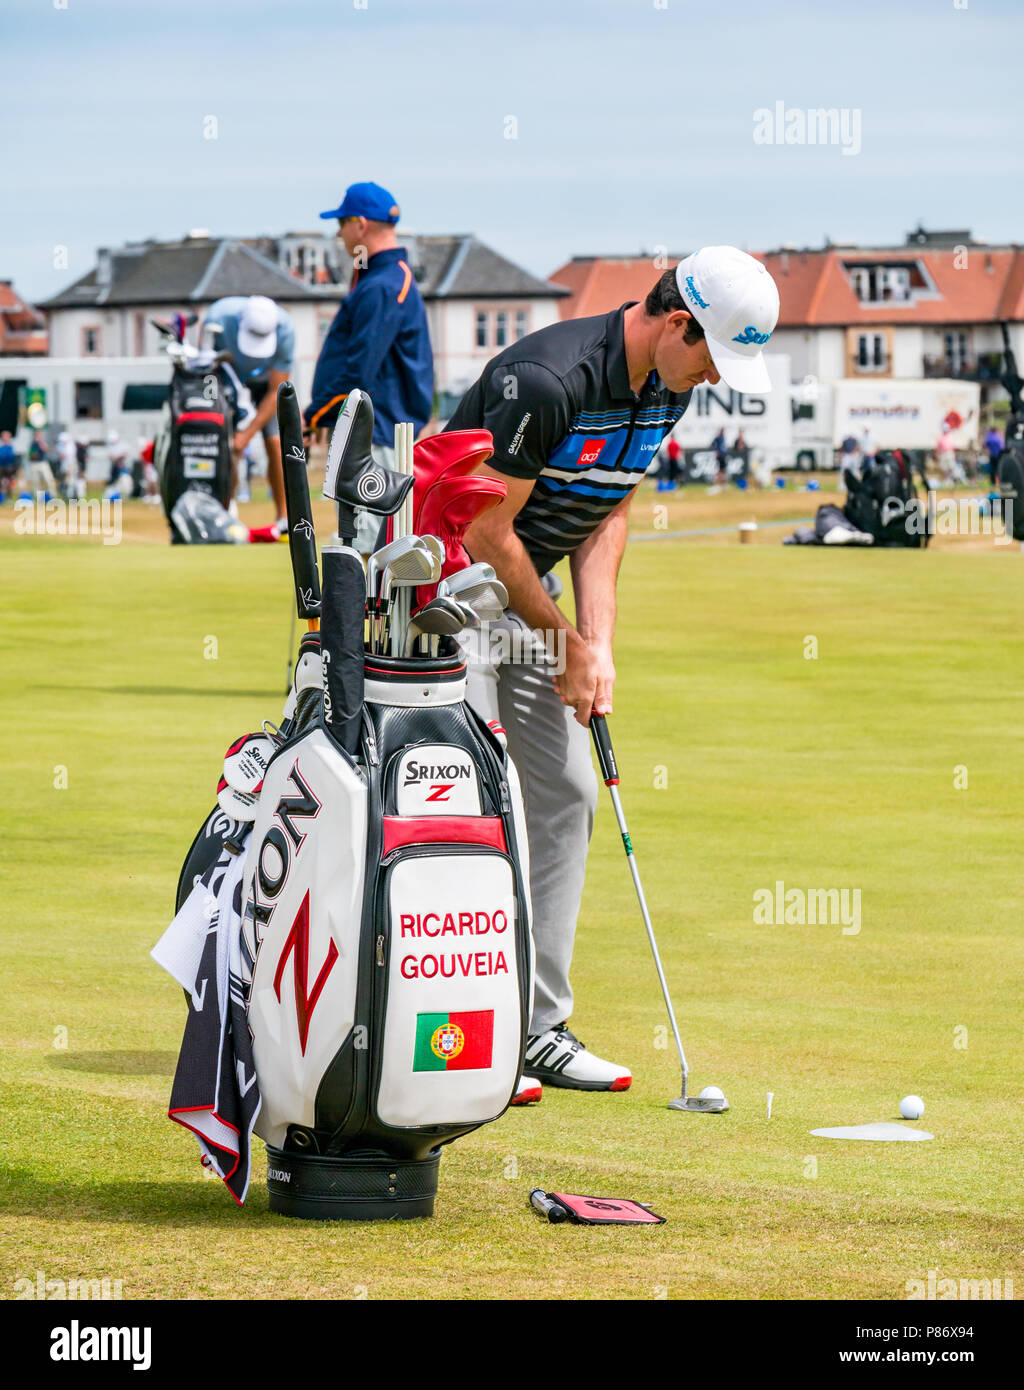 Gullane, UK. 10th July 2018. Aberdeen Standard Investments Scottish Open Golf Championship final preparations, Gullane, East Lothian, Scotland, United Kingdom, 10th July 2018. The final stages of preparations in progress for the 5th European Tour Rolex Series at Gullane Golf Course in preparation for the start of the open championship from 12th to 15th July. Golfers practising on the putting green. Ricardo Gouveia, Portuguese professional golfer - Stock Image